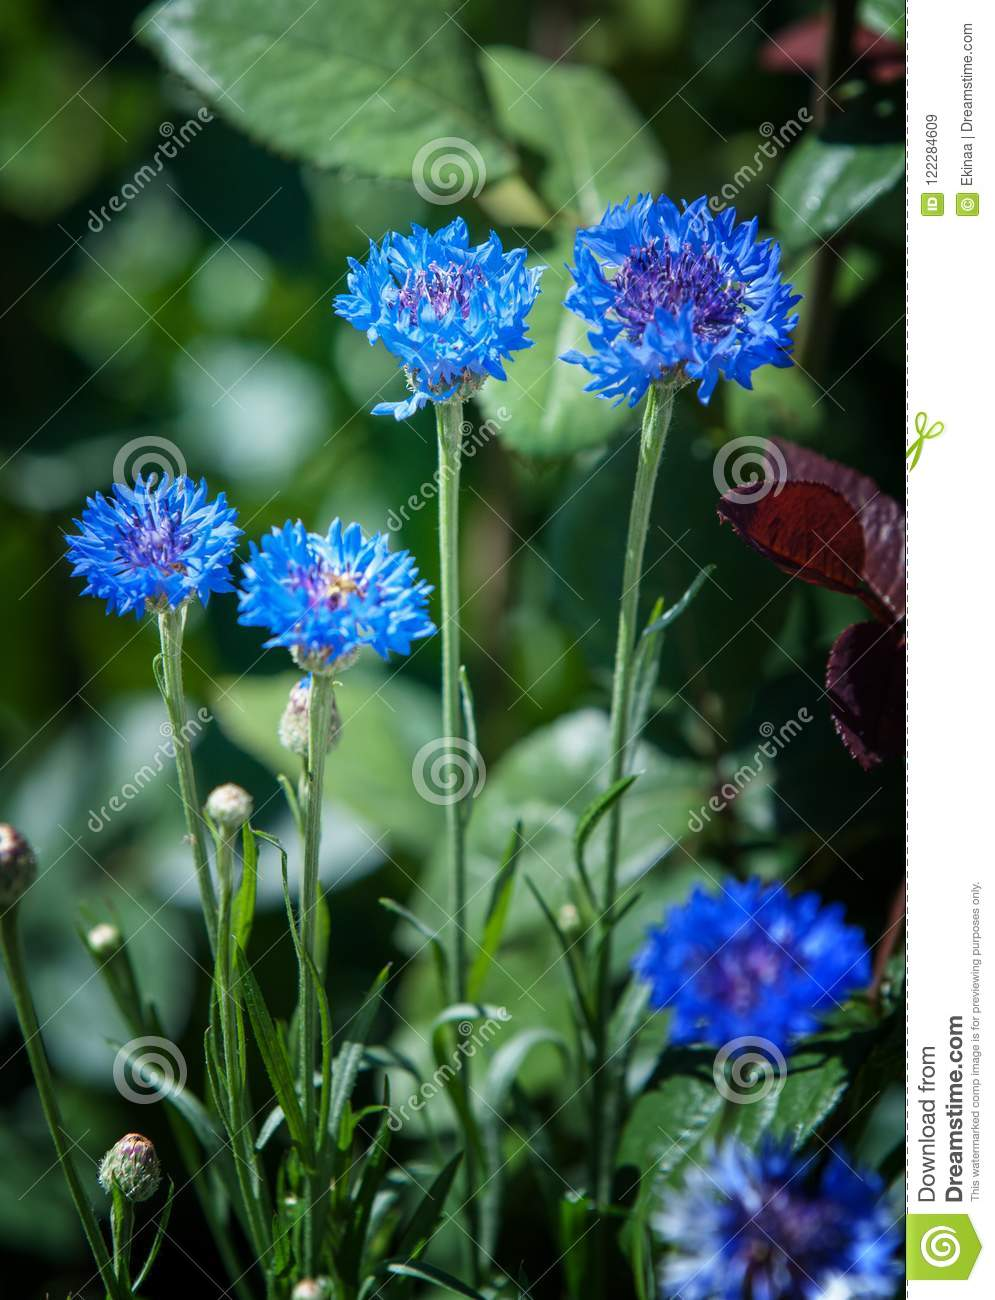 Flowers cornflowers a slender eurasian plant related to the kna flowers cornflowers a slender eurasian plant related to the knapweed with flowers that are typically a deep vivid blue izmirmasajfo